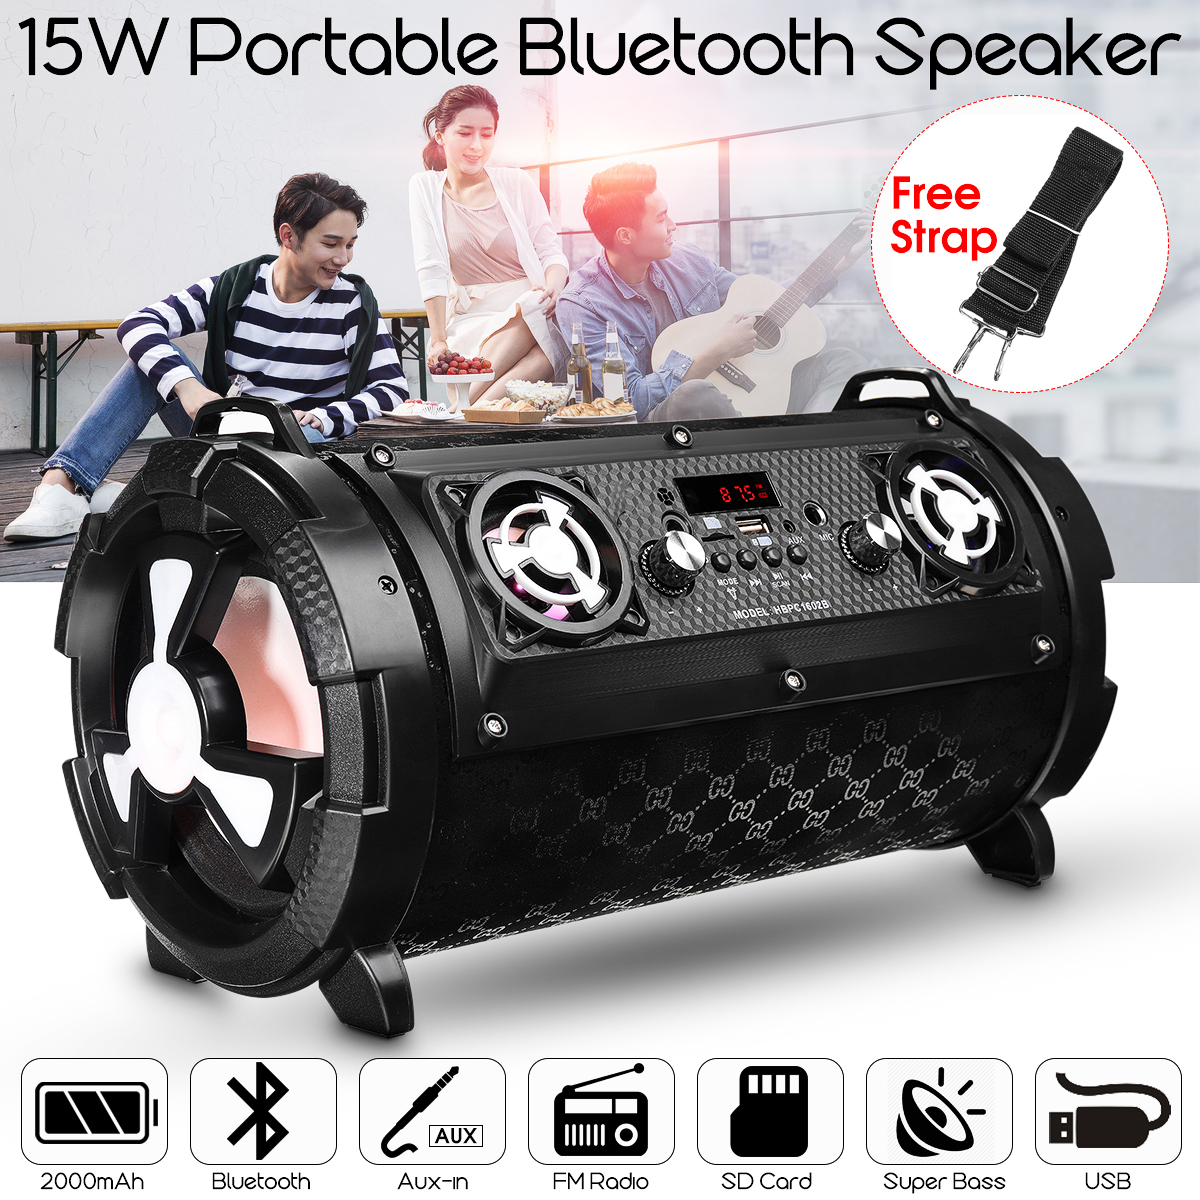 KINCO 15W Bass Outdoor Sports Portable Bluetooth Speaker Wireless Subwoofer Hi-Fi Radio FM /AUX / TF / USB With Microphone outdoor portable bluetooth speaker wireless waterproof bass loud speaker 3d hifi stereo subwoofer support tf card fm radio